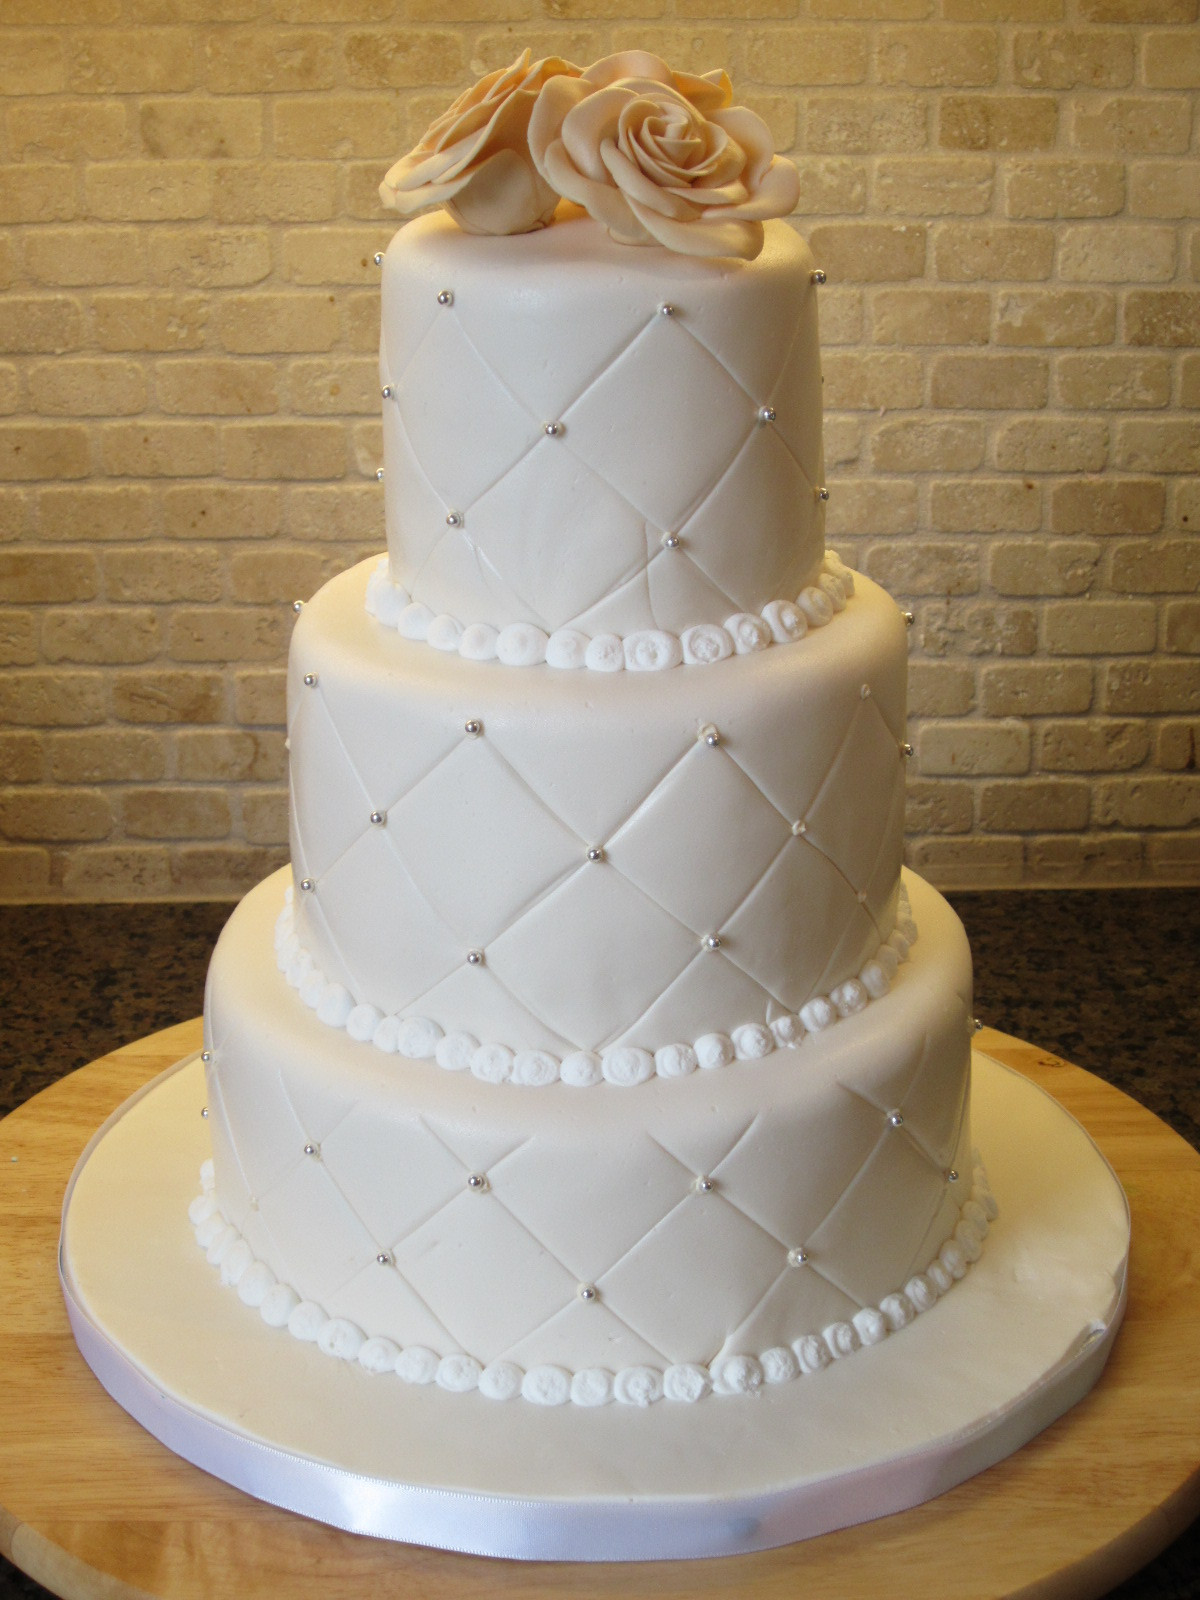 Wedding Cakes Galleries  Top 20 wedding cake idea trends and designs 2017